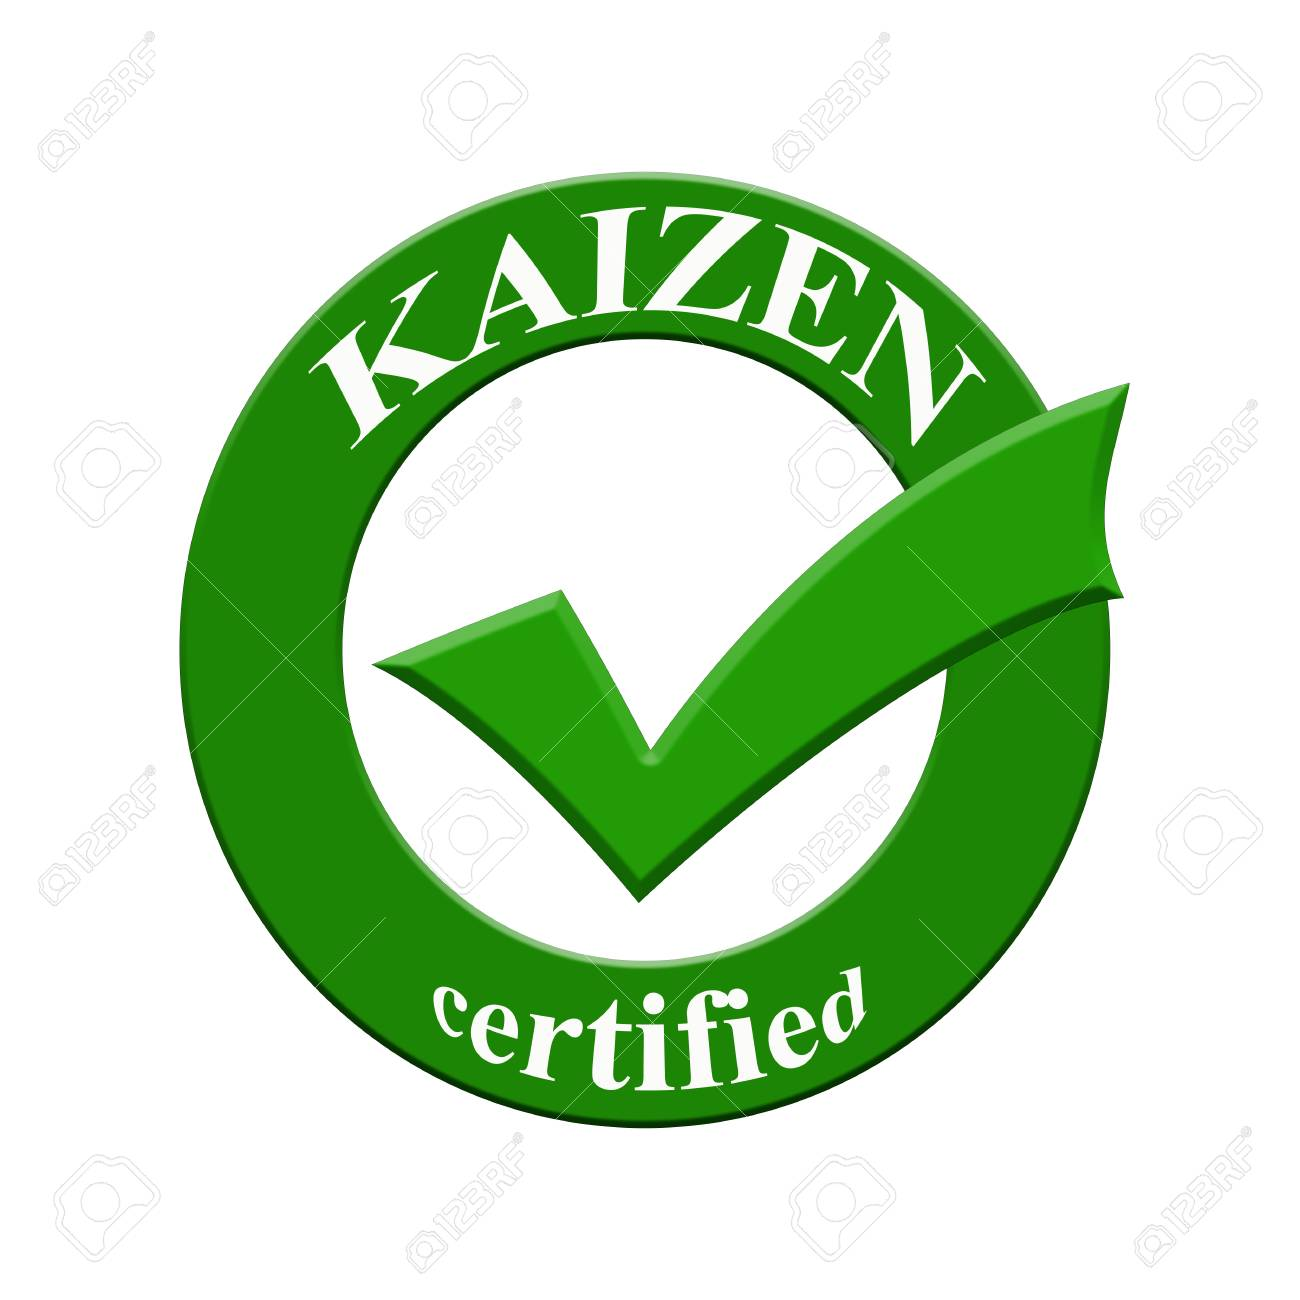 KAIZEN Certified Icon Or Symbol Image Concept Design With Business ...